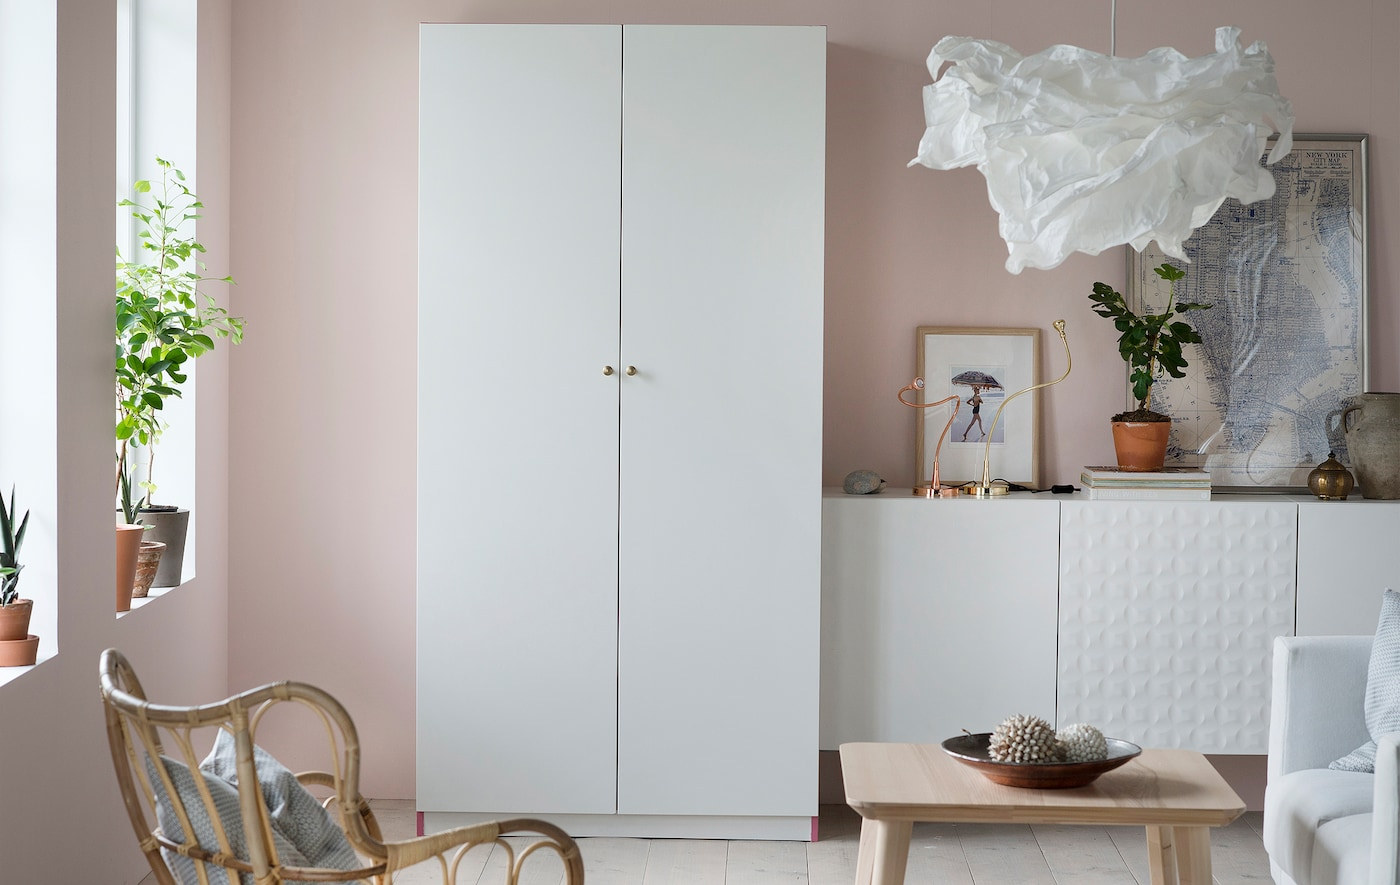 A white tanem PAX wardrobe in an airy living room area, with its two white doors closed so the room feels calm and inviting.